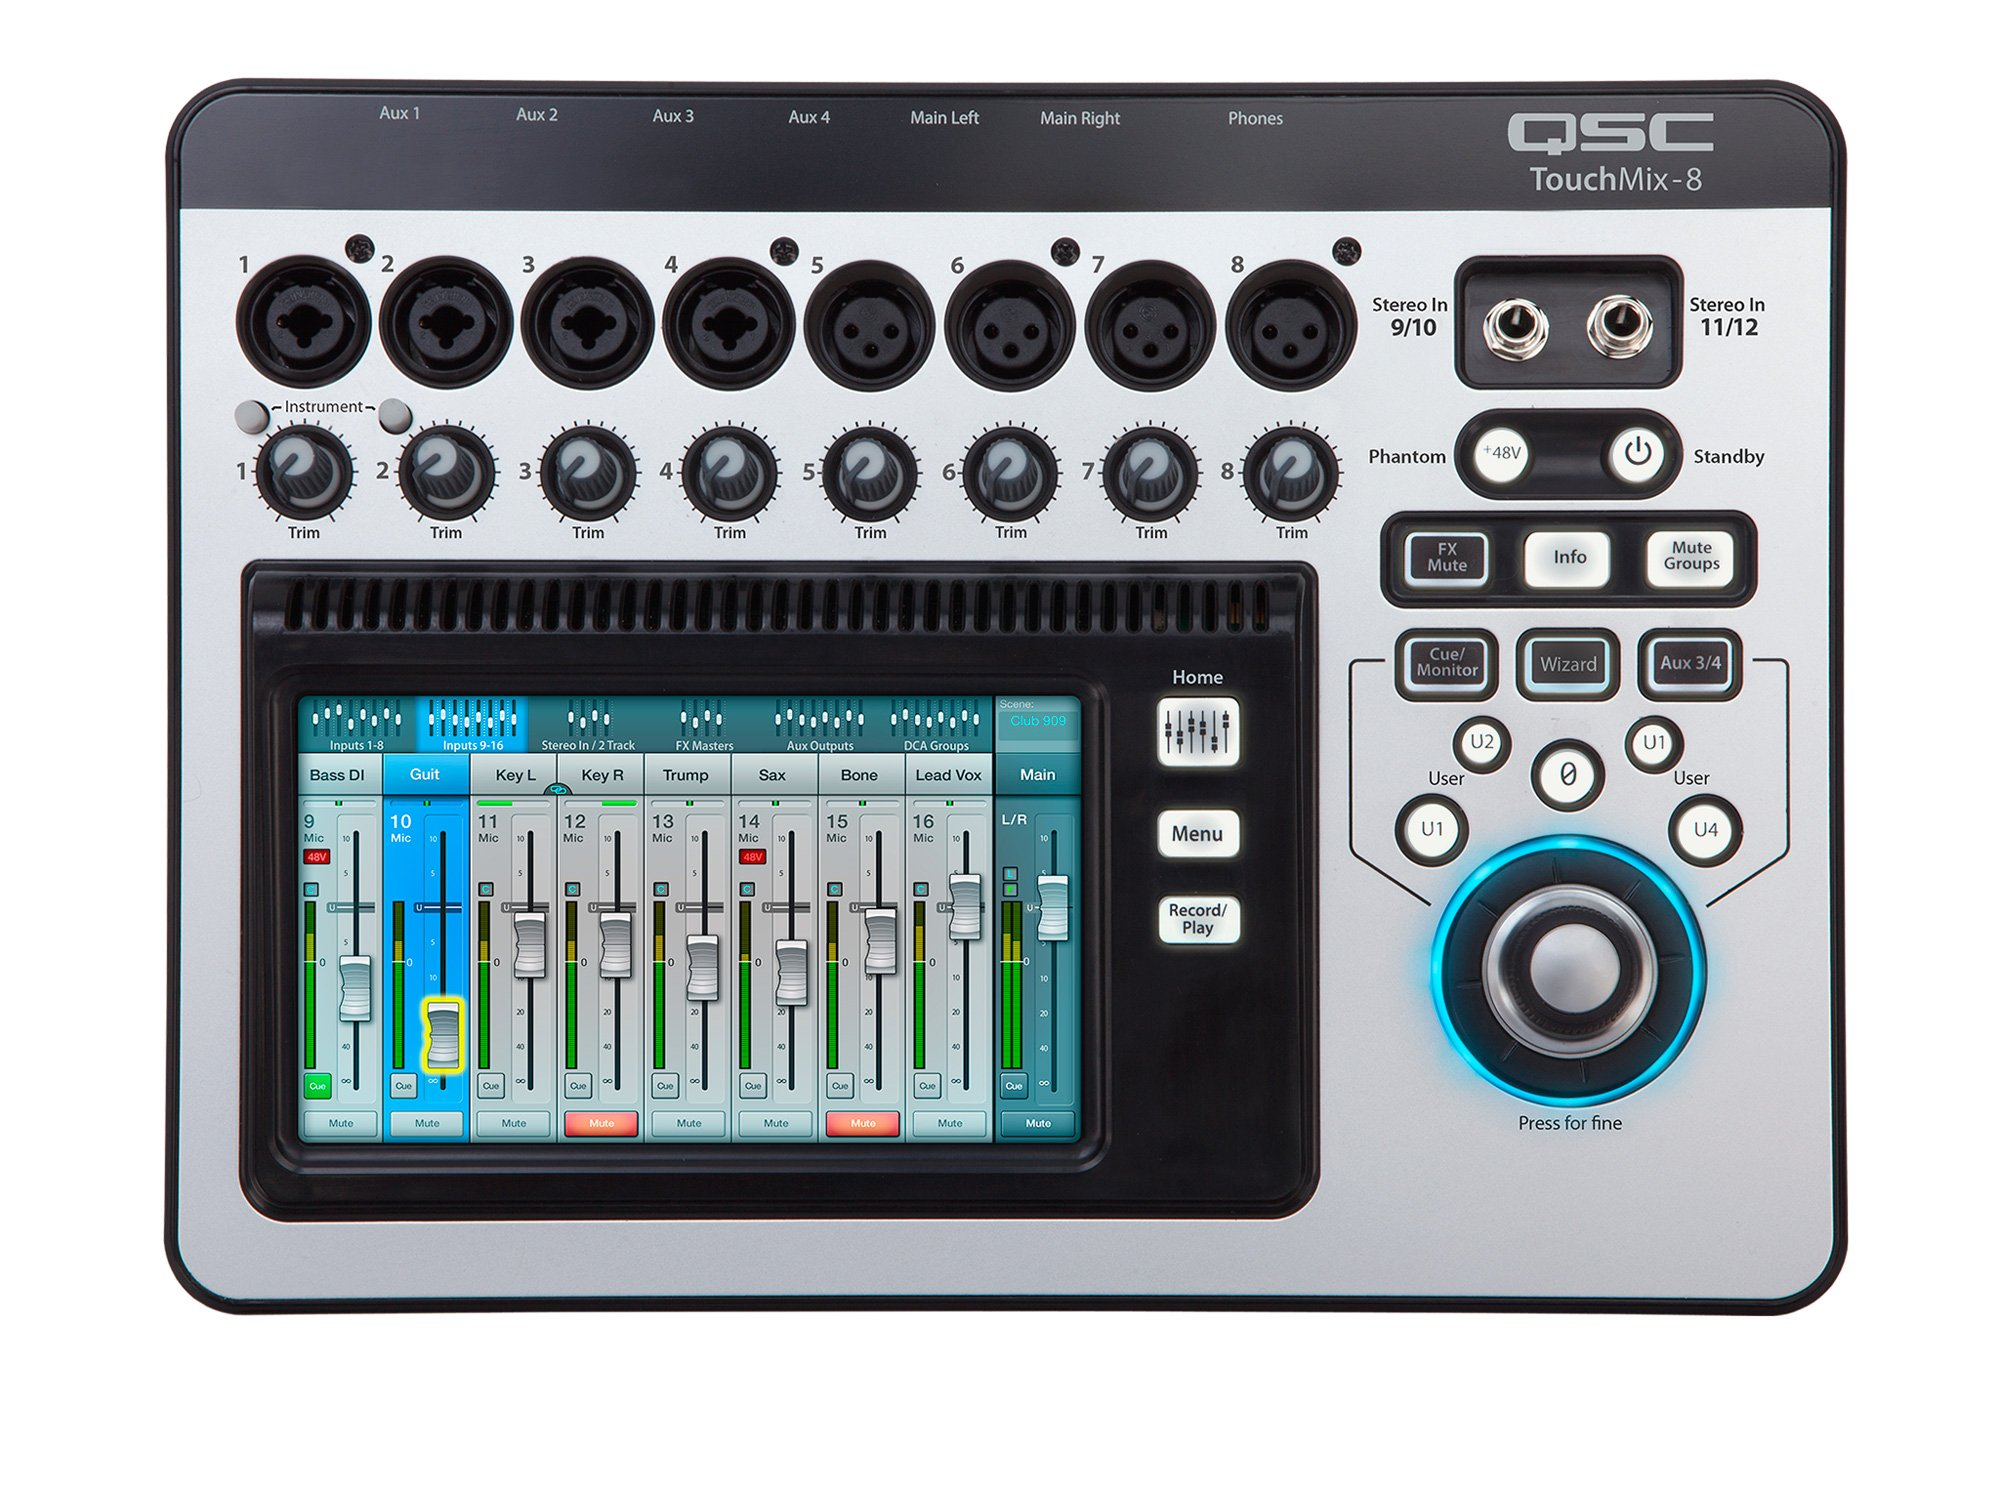 qsc touchmix 8 12 channel digital audio mixer with 4 mic 4 mic line inputs. Black Bedroom Furniture Sets. Home Design Ideas